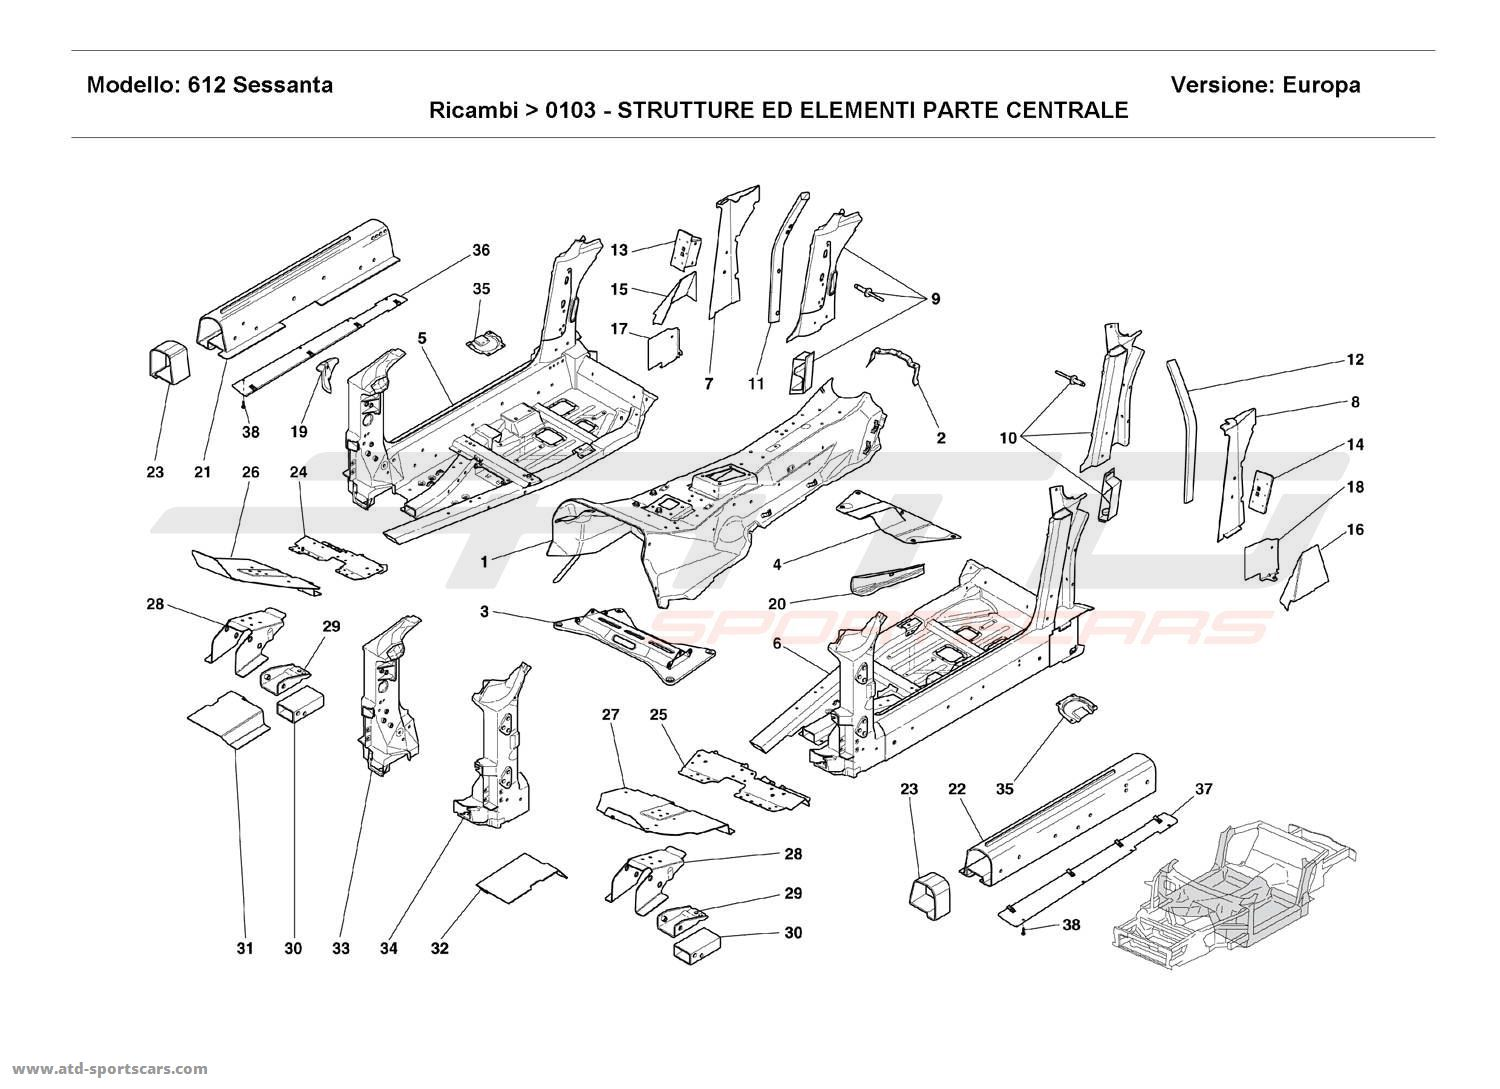 Ferrari 612 Sessanta CENTRAL STRUCTURES AND COMPONENTS